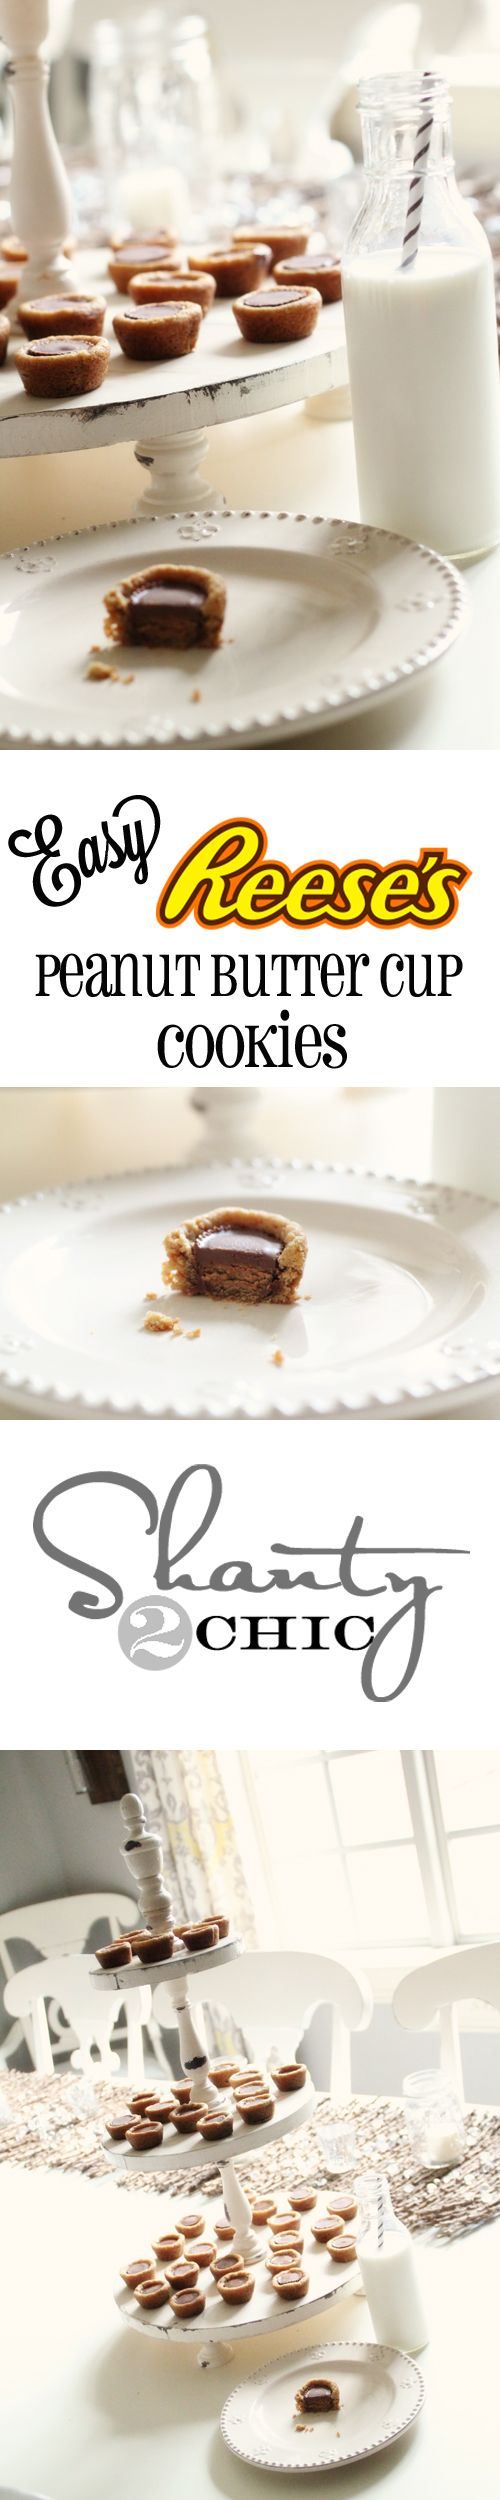 Easy Reese's Peanut Butter Cup Cookies